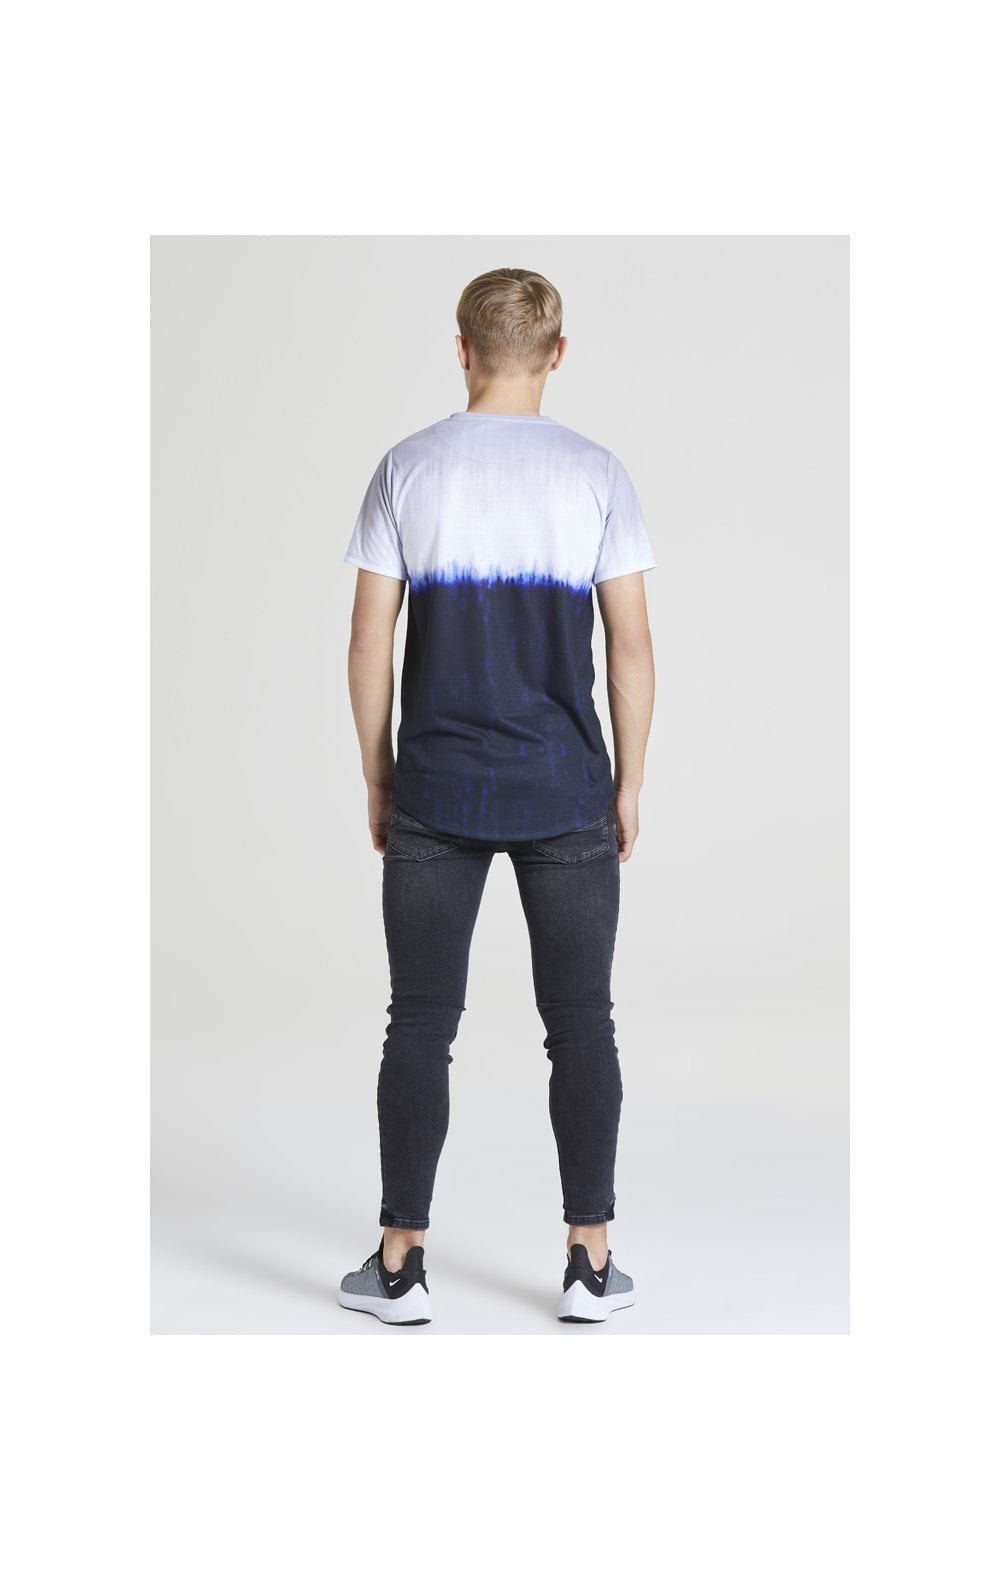 Illusive London Tie Dye Fade Tee - Grey, Navy & white (4)